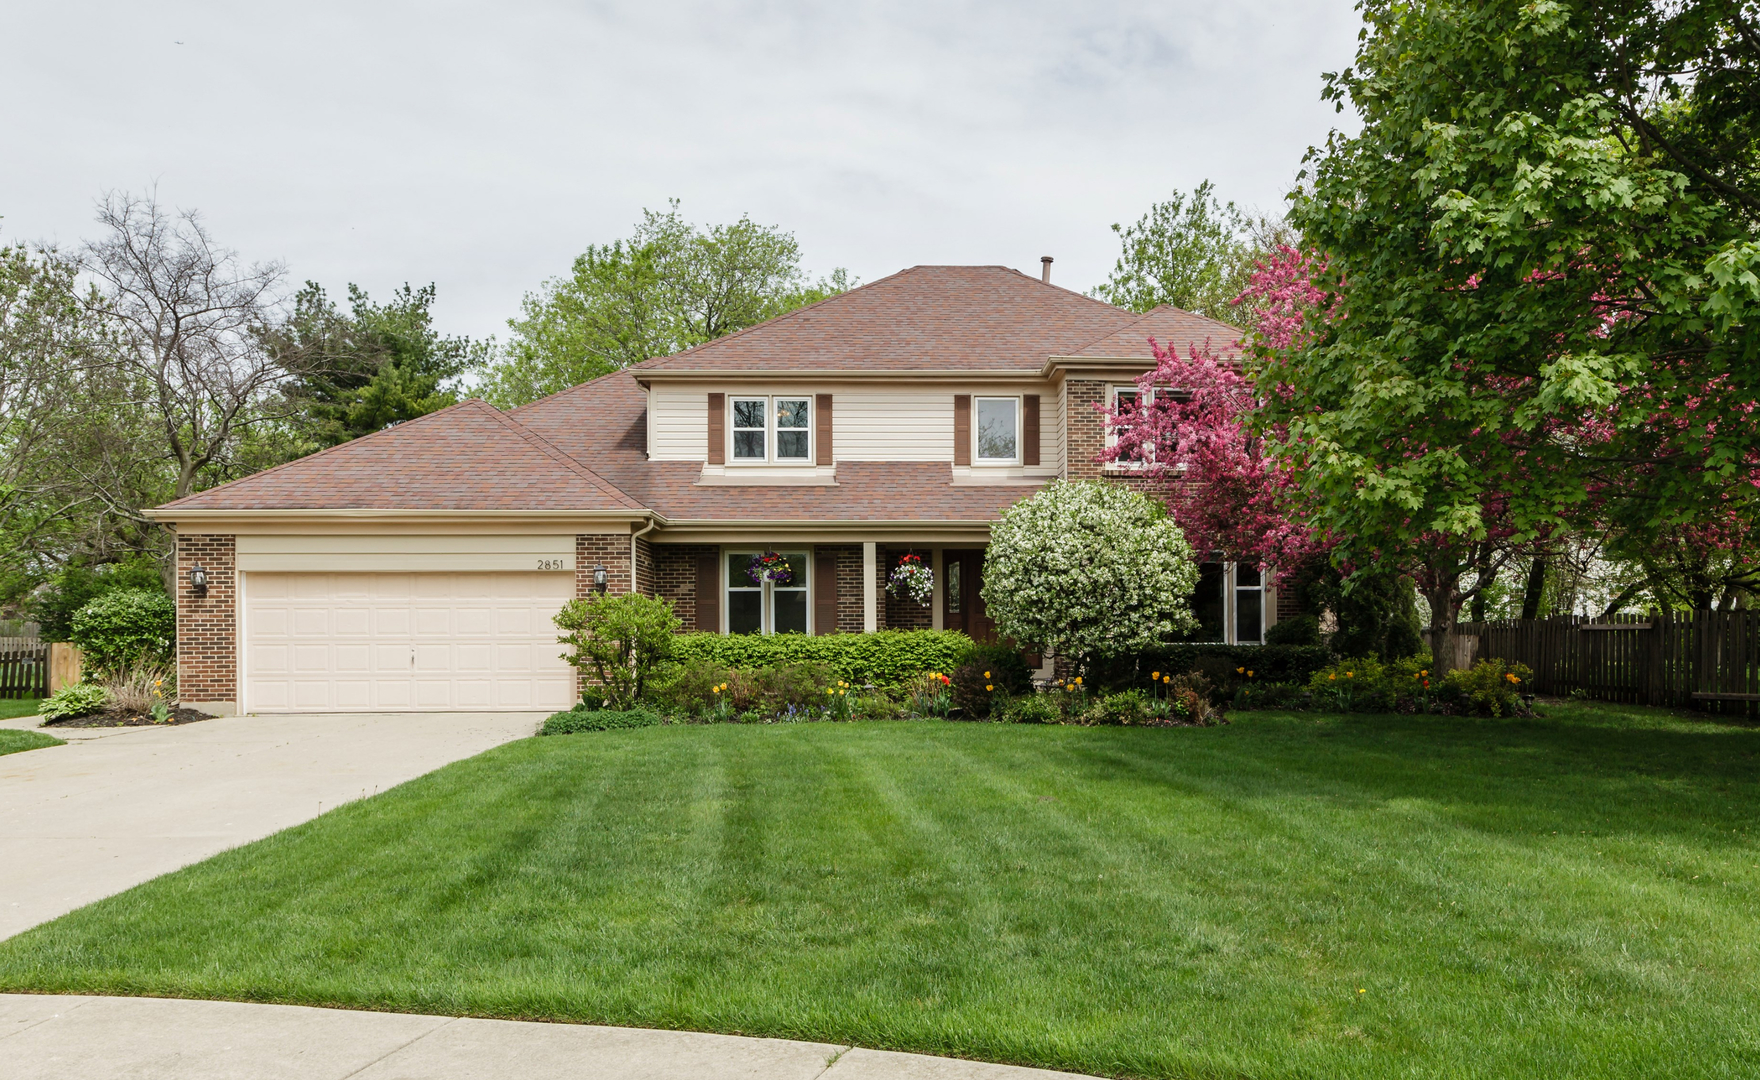 2851 Whispering Oaks Drive, Buffalo Grove in Lake County, IL 60089 Home for Sale